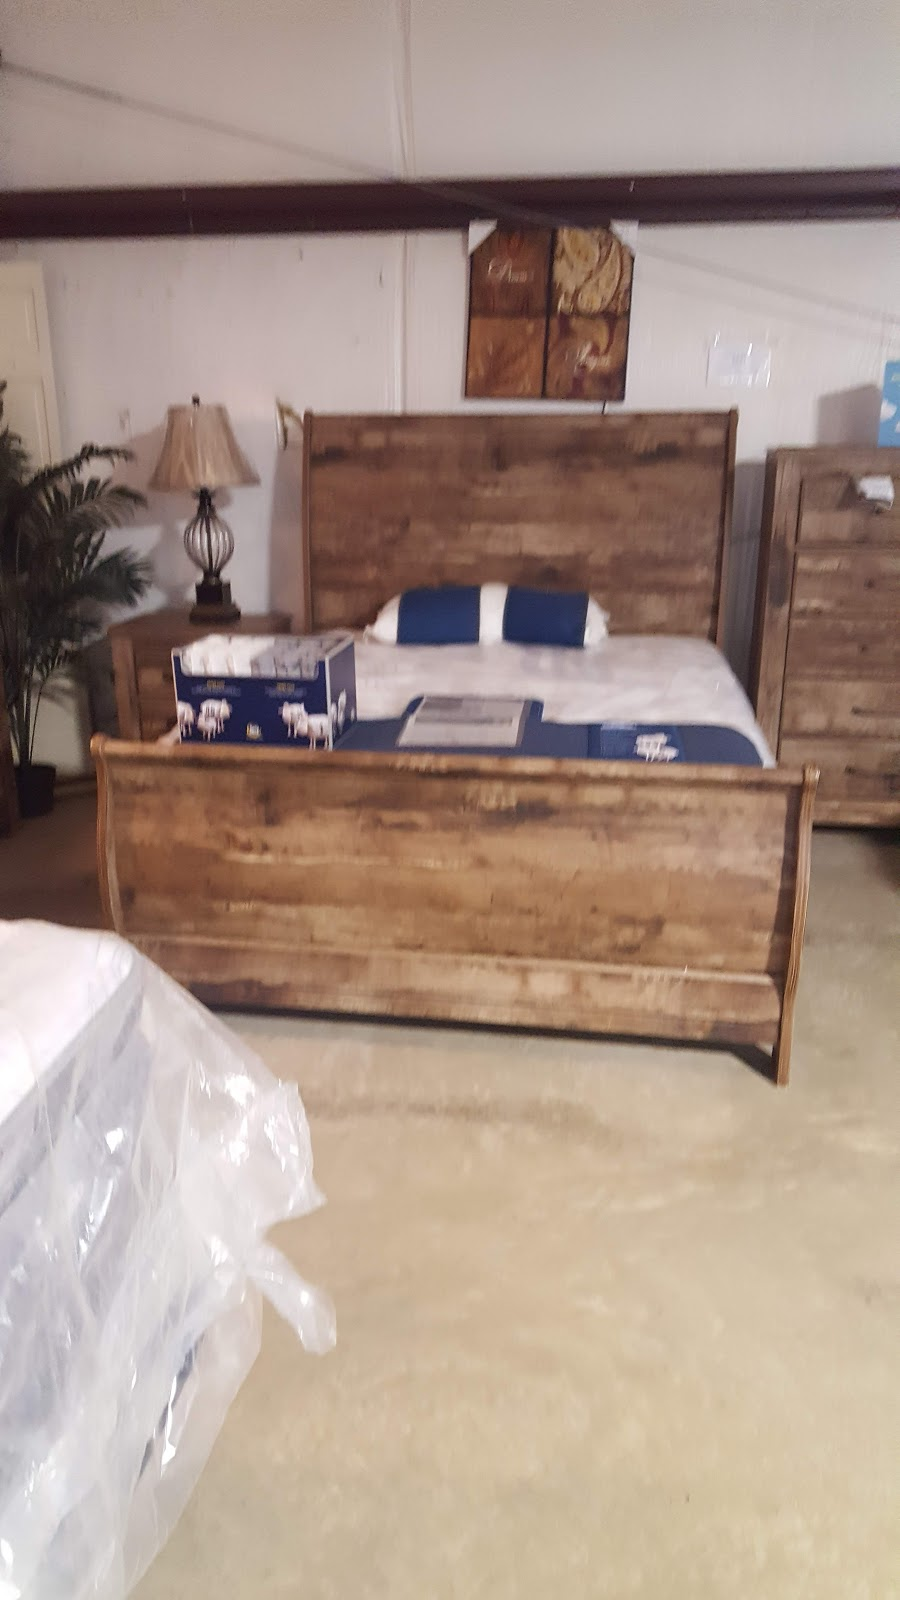 M & M Freight - furniture store    Photo 4 of 8   Address: 2041 S Broadway St, Sulphur Springs, TX 75482, USA   Phone: (903) 439-2939